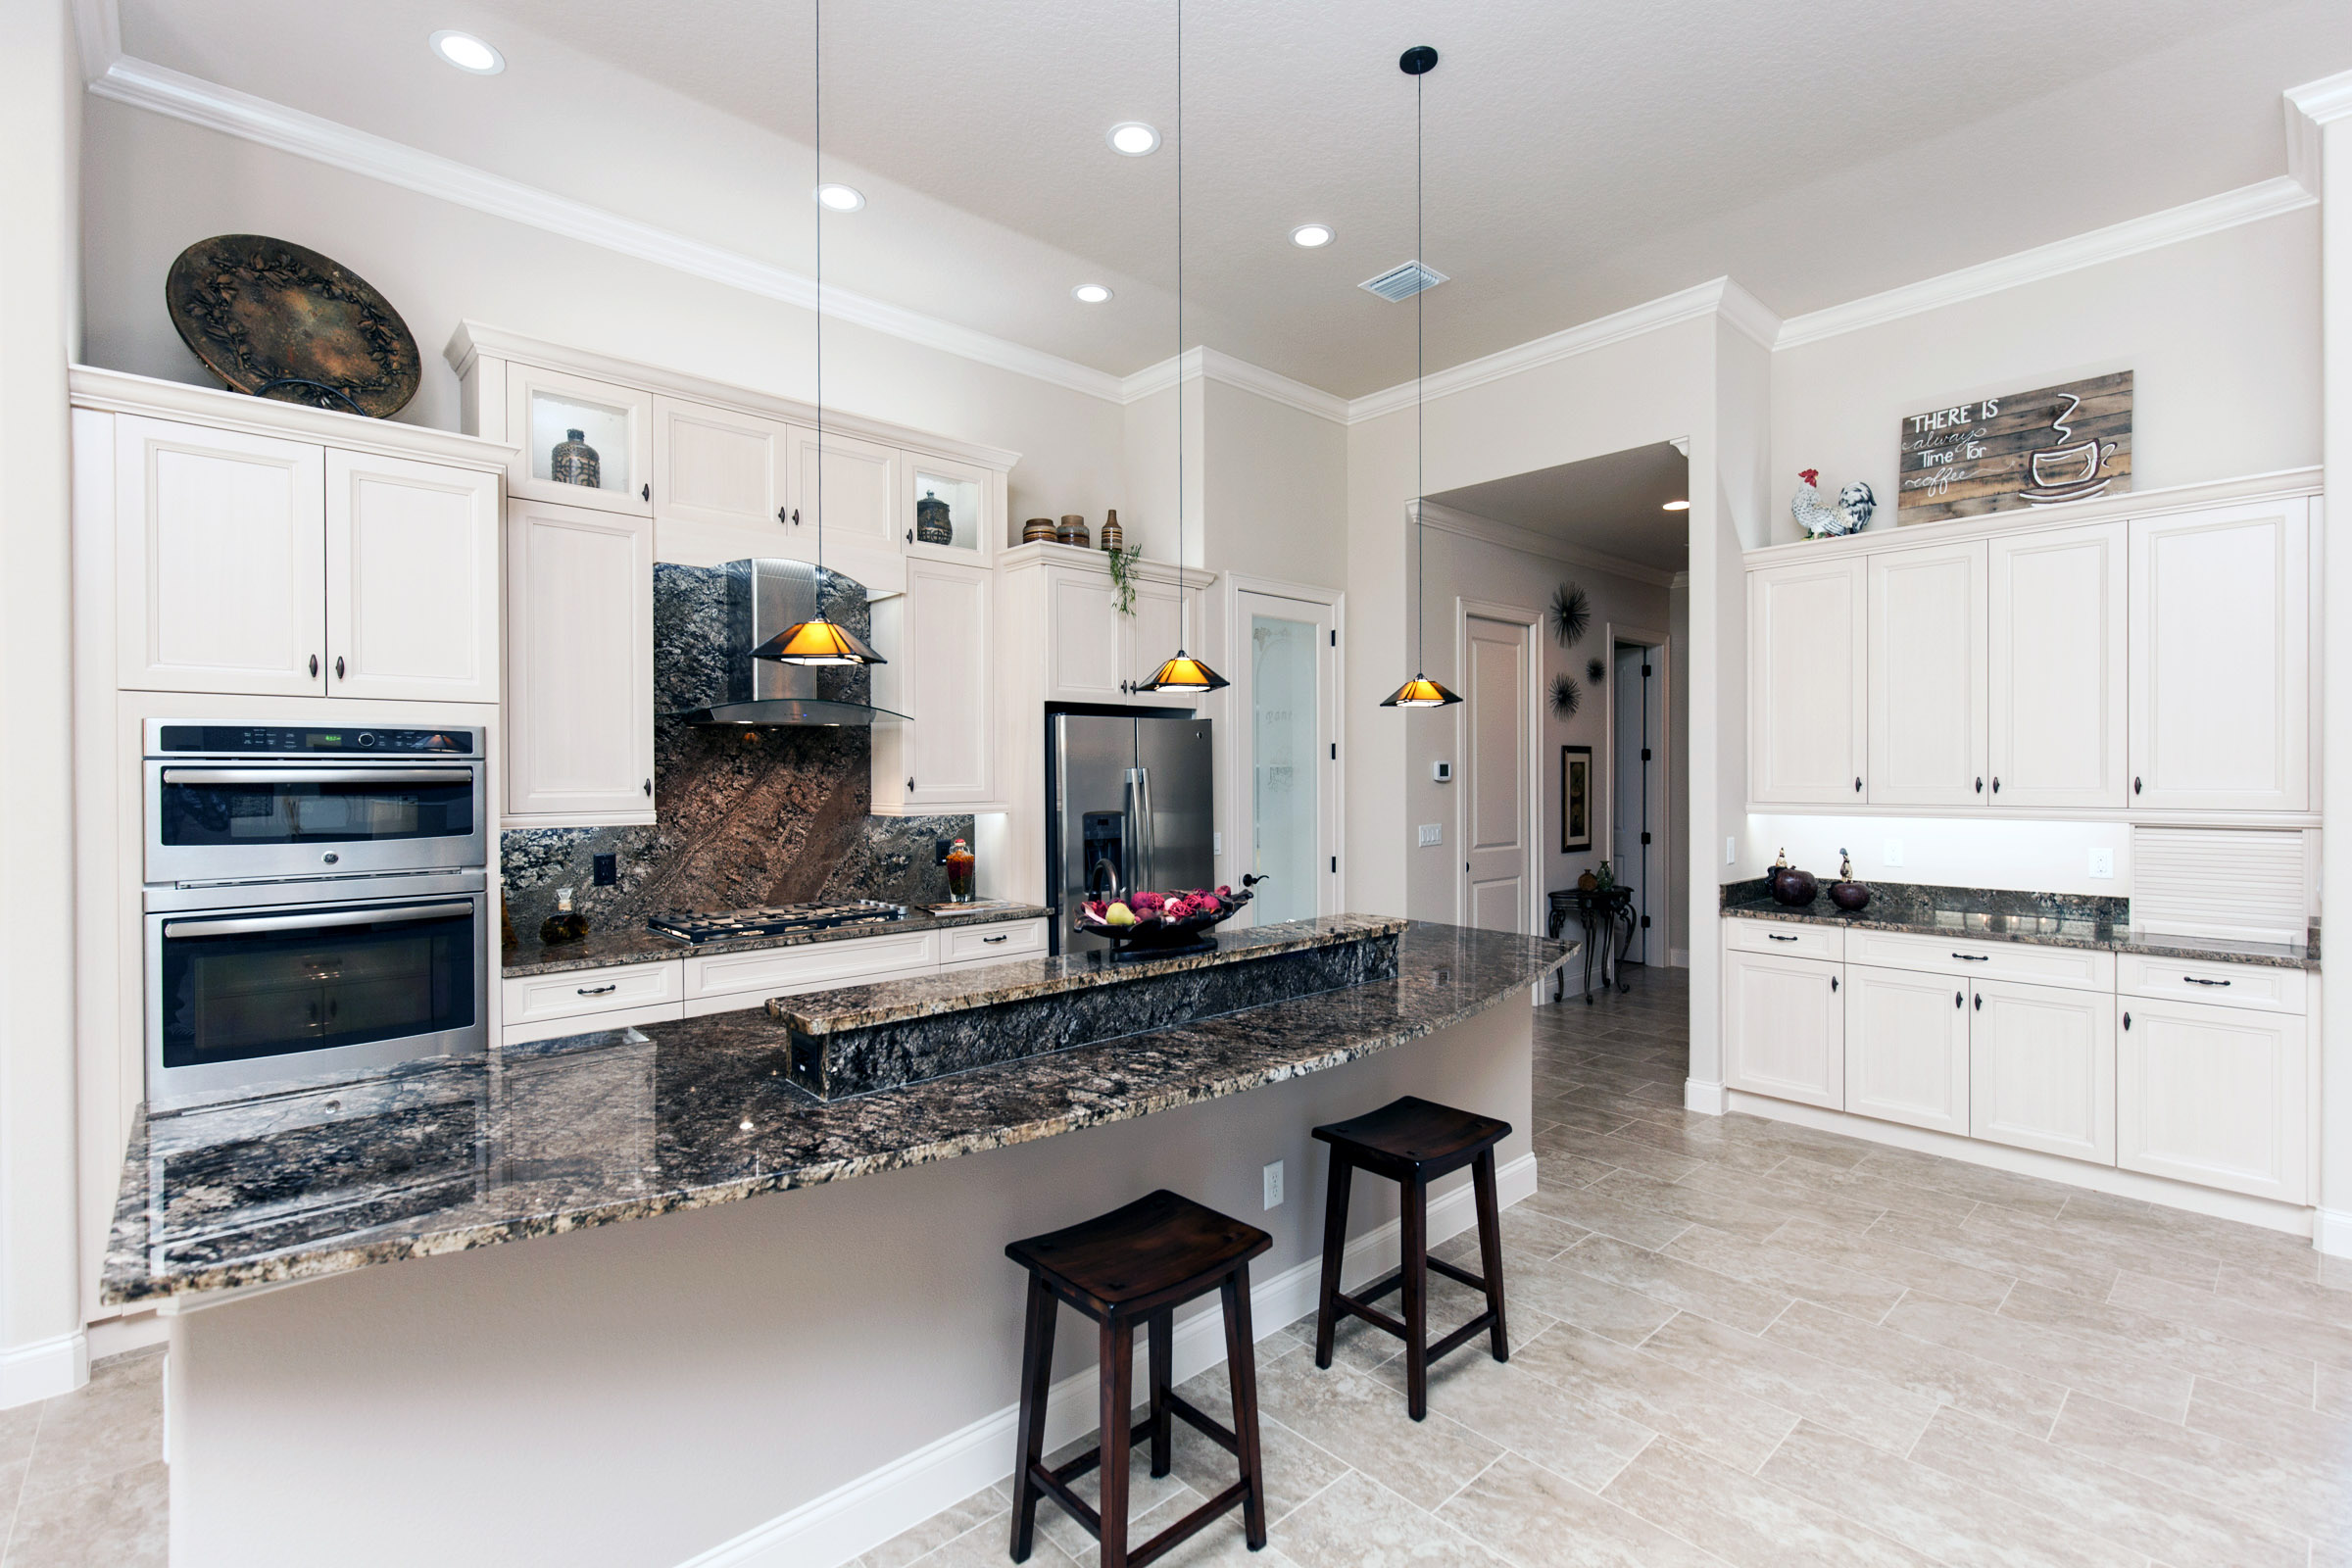 Kitchen with long bar and white cabinets